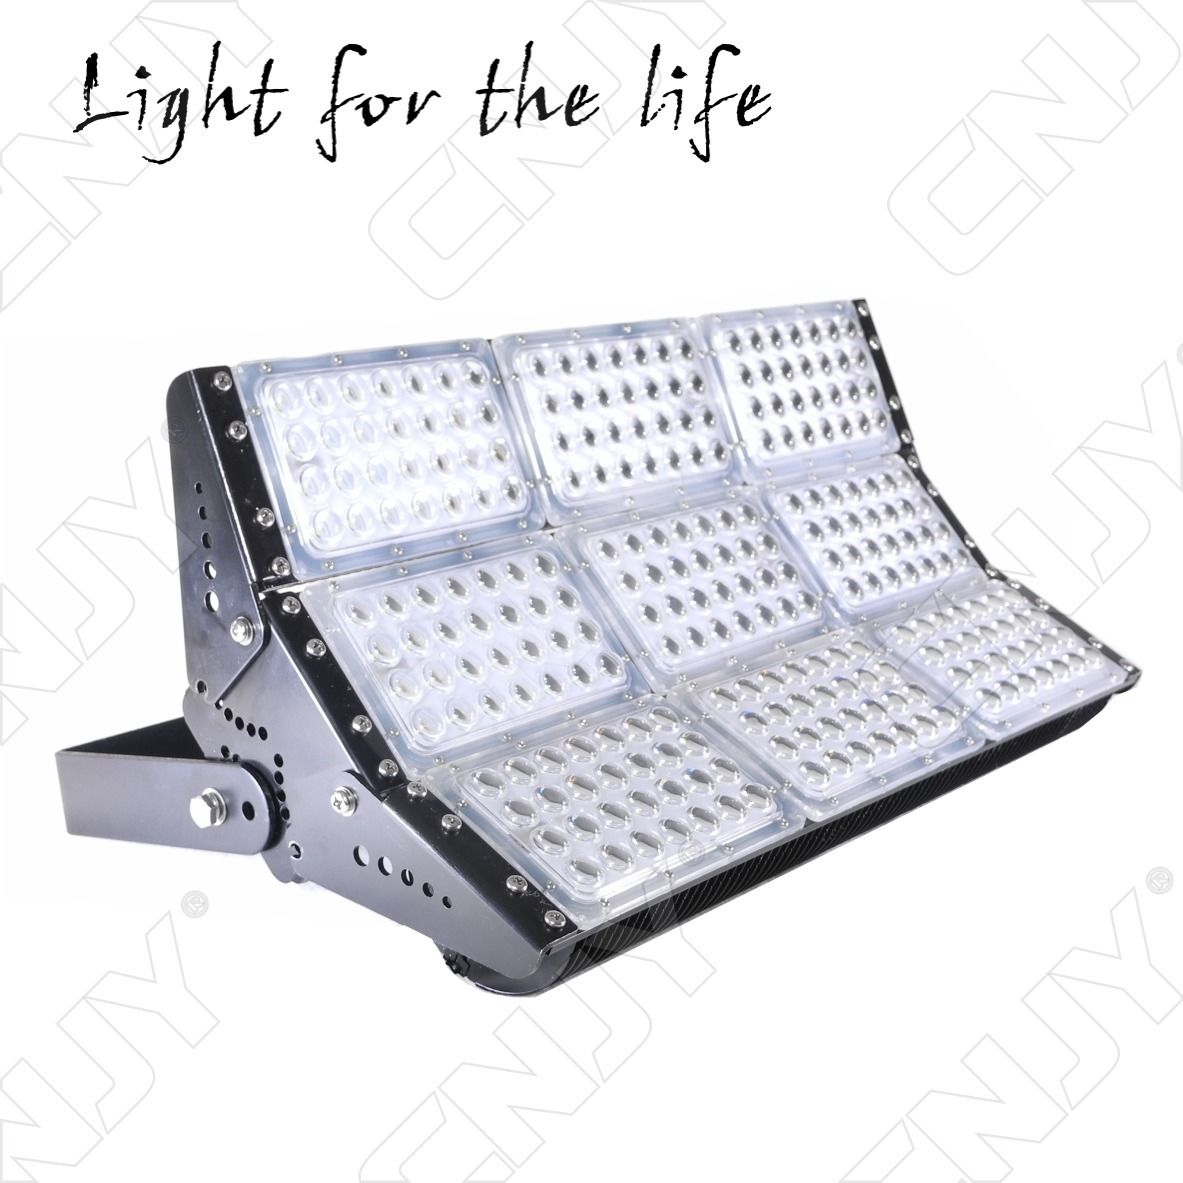 spot,orientable, industriel, eclairage, aéroport, gare, centre commercial, parking, station service, cree, led, 400w, haute, puissance, high bay light, 5700k, 100, 270v, ac, 36000lm